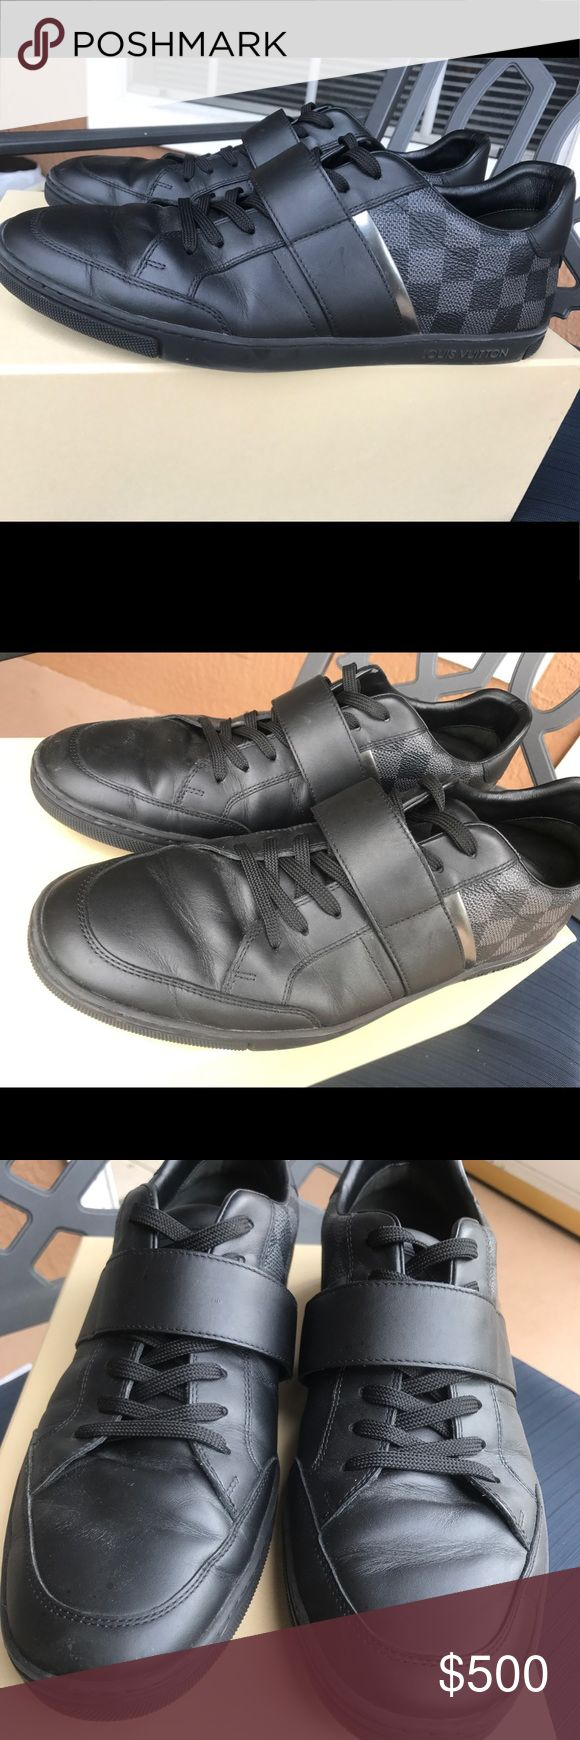 Authentic Louis Vuitton Men's Sneakers Pair of Authentic Louis Vuitton men's sneakers in Dark Gray Damier Canvas. Slight wear on them, still amazing quality. Includes the original box it was purchased in, shoe dust bags, original Louis Vuitton replacement laces that came with the purchase. Size 9 Louis Vuitton Shoes Sneakers